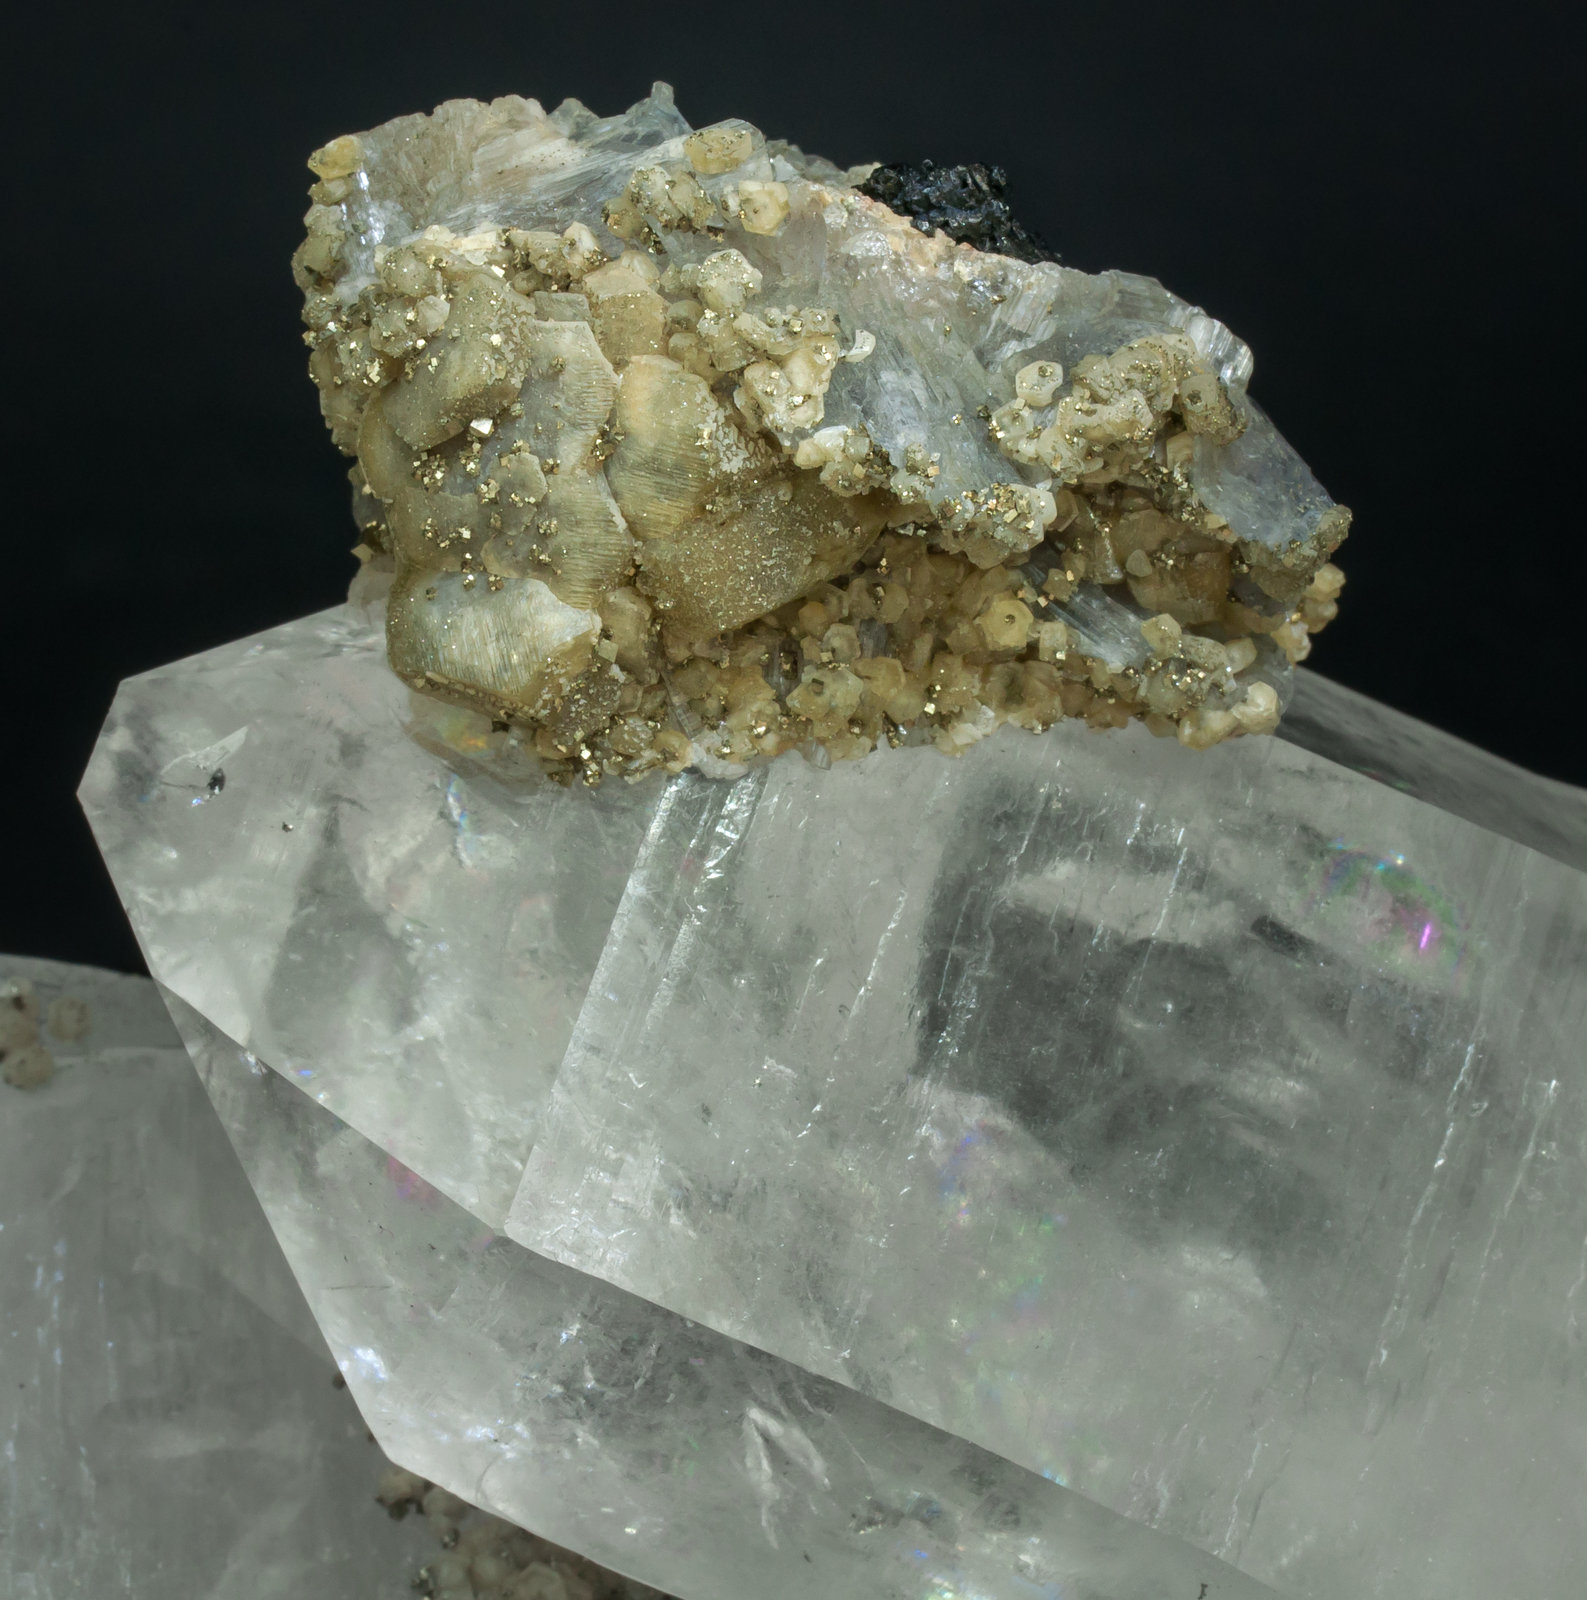 specimens/s_imagesAD6/Quartz-NH57AD6d.jpg